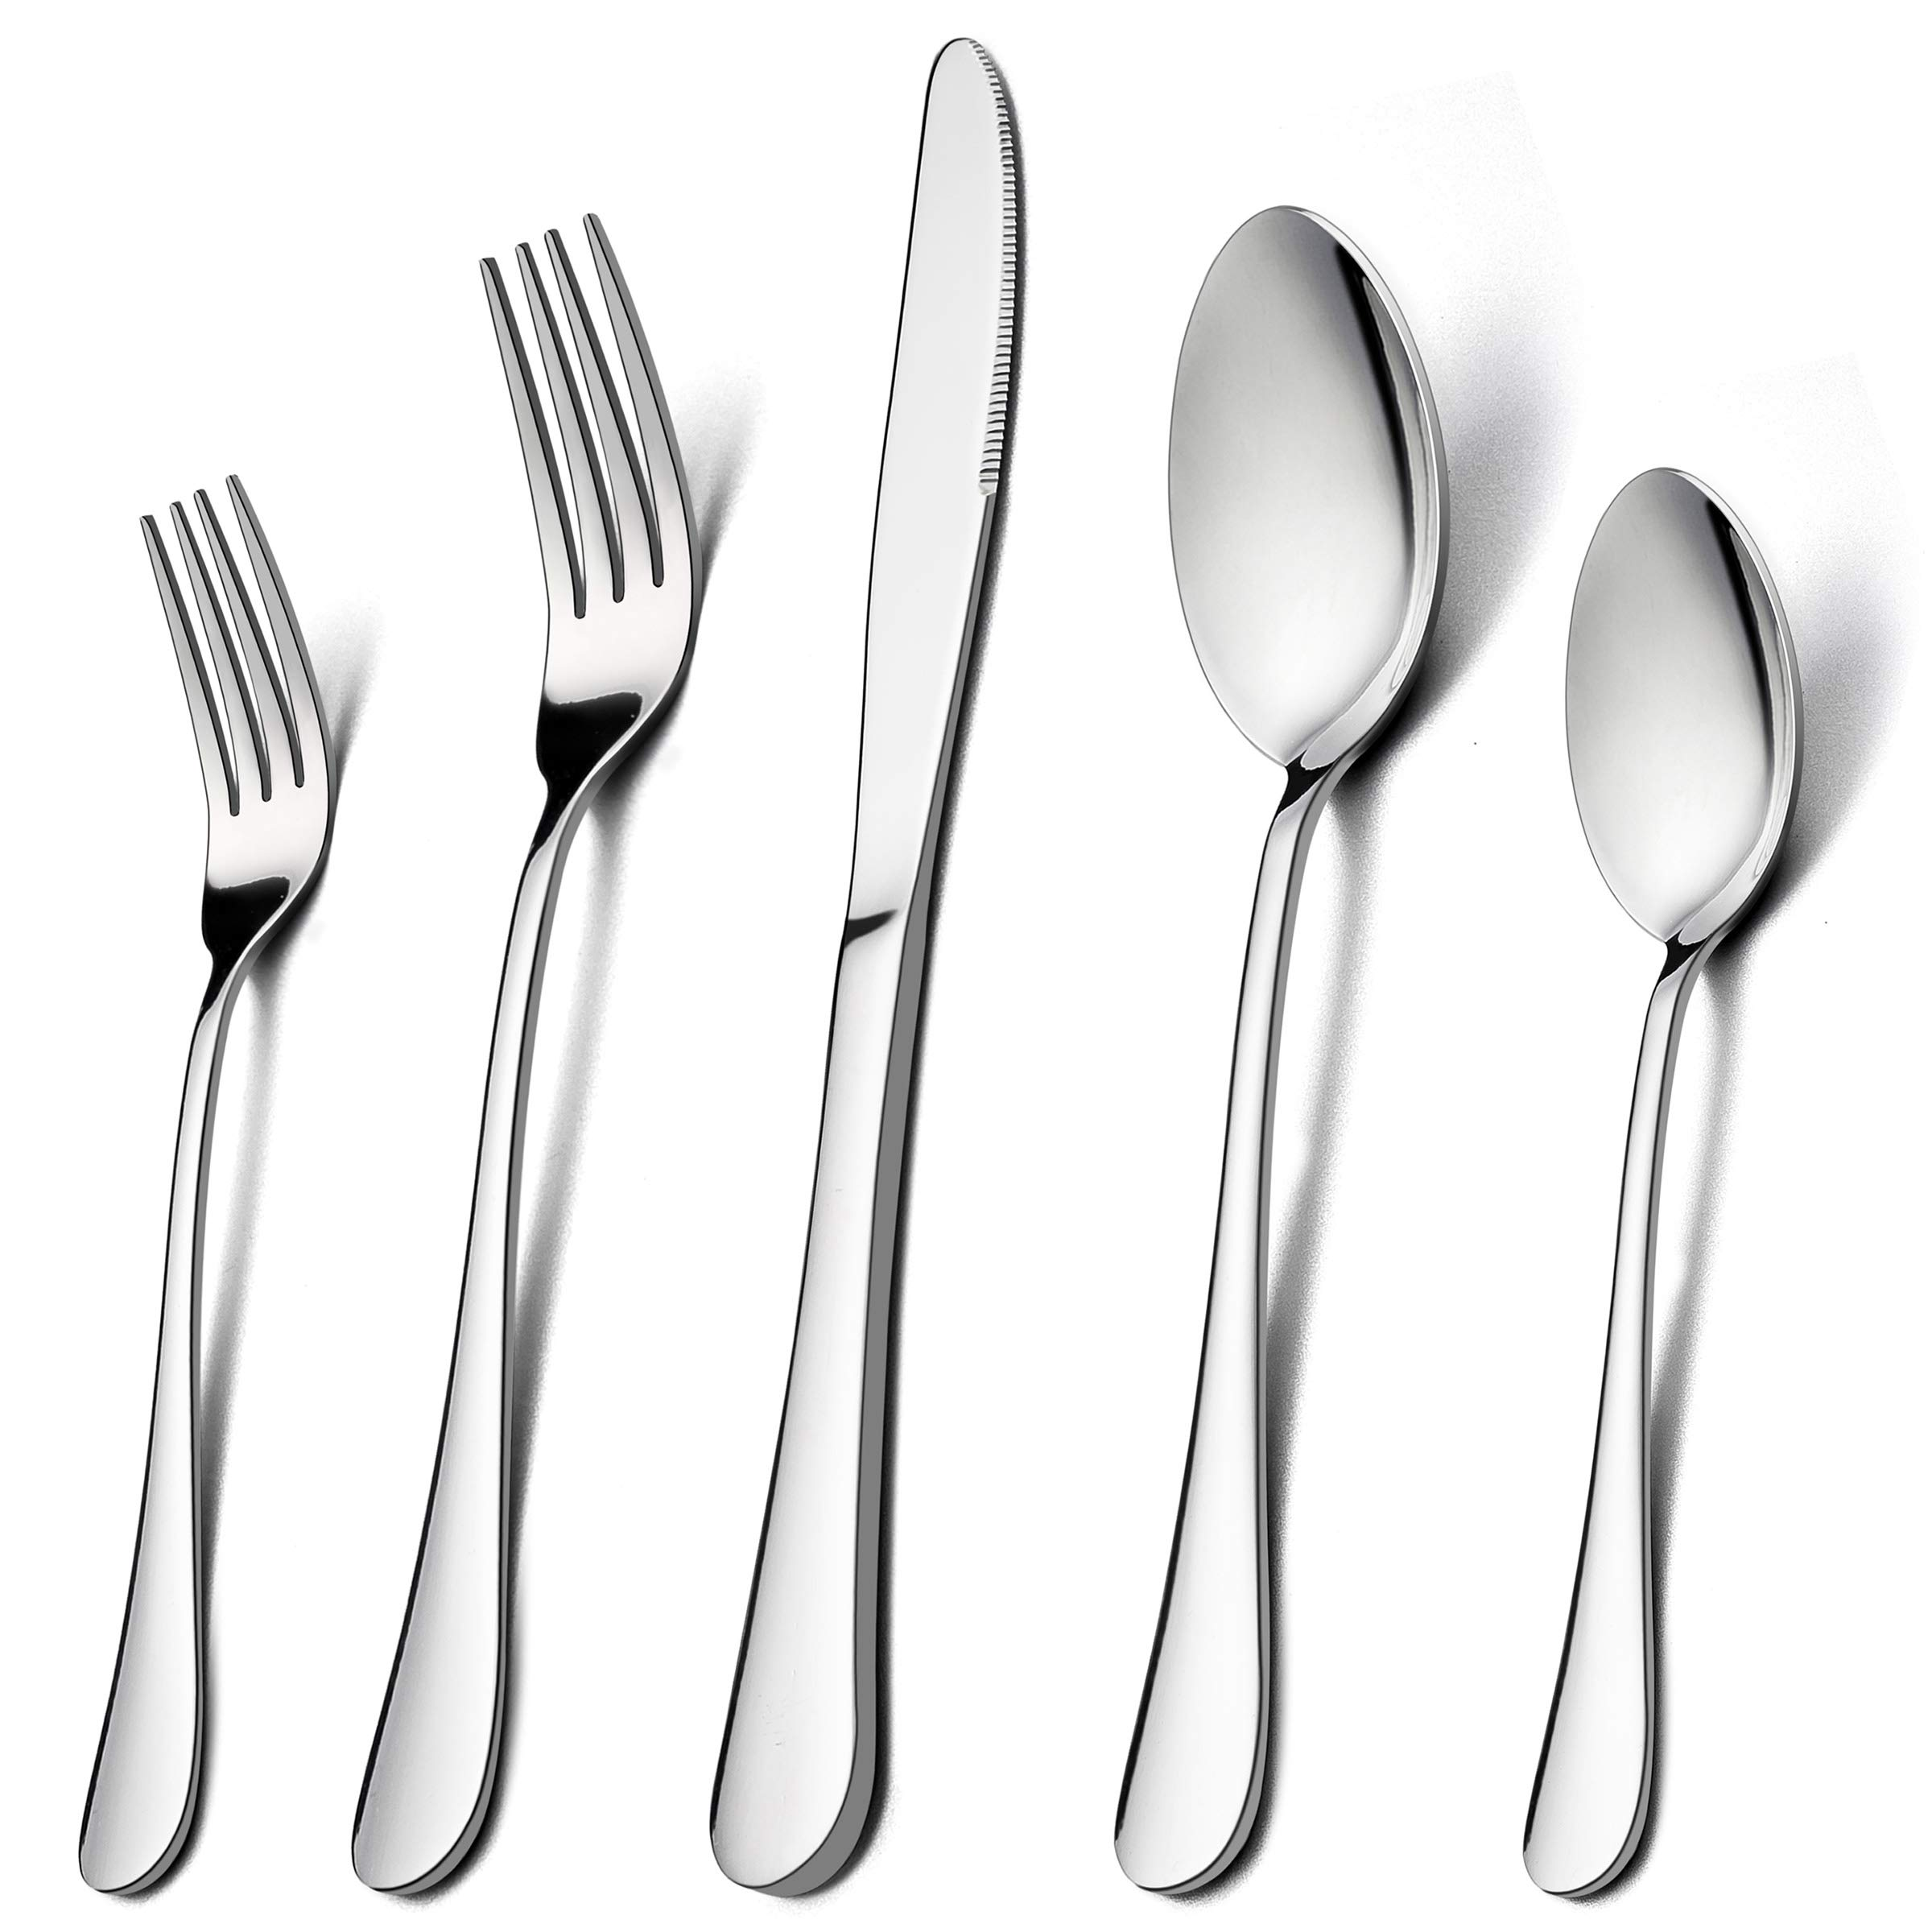 60-Piece Silverware Flatware Set for 12, LIANYU Stainless Steel Cutlery Eating Utensils Set, Kitchen Restaurant Party Tableware, Mirror Finished, Dishwasher Safe by LIANYU